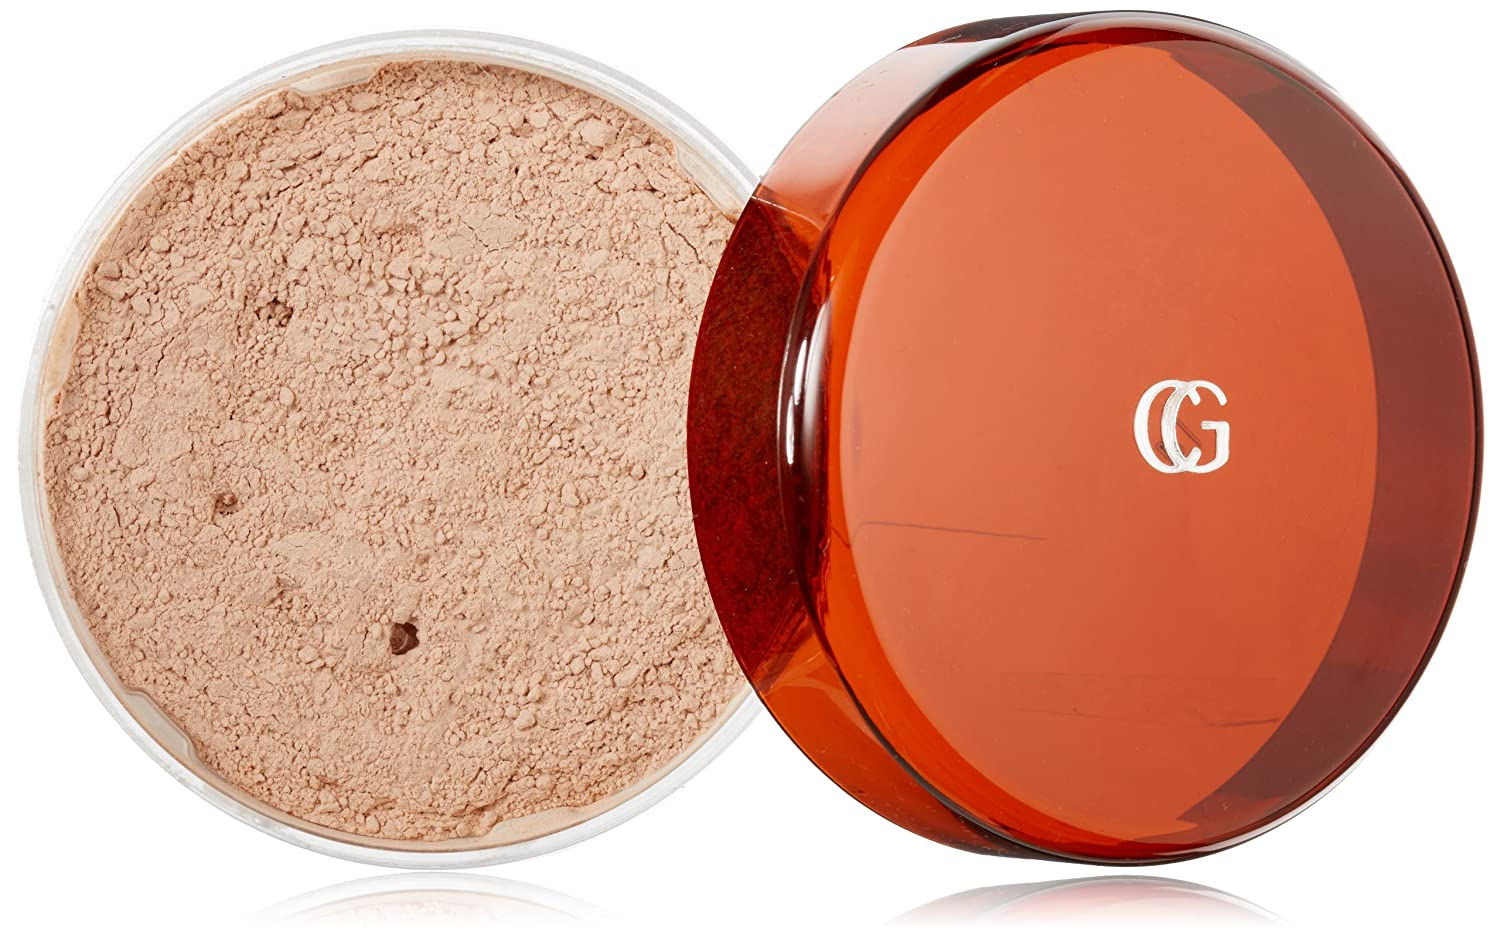 CoverGirl Professional Translucent Face Loose Powder Translucent Light(N) 110, 0.7-Ounce Shaker top jar (Pack of 2)